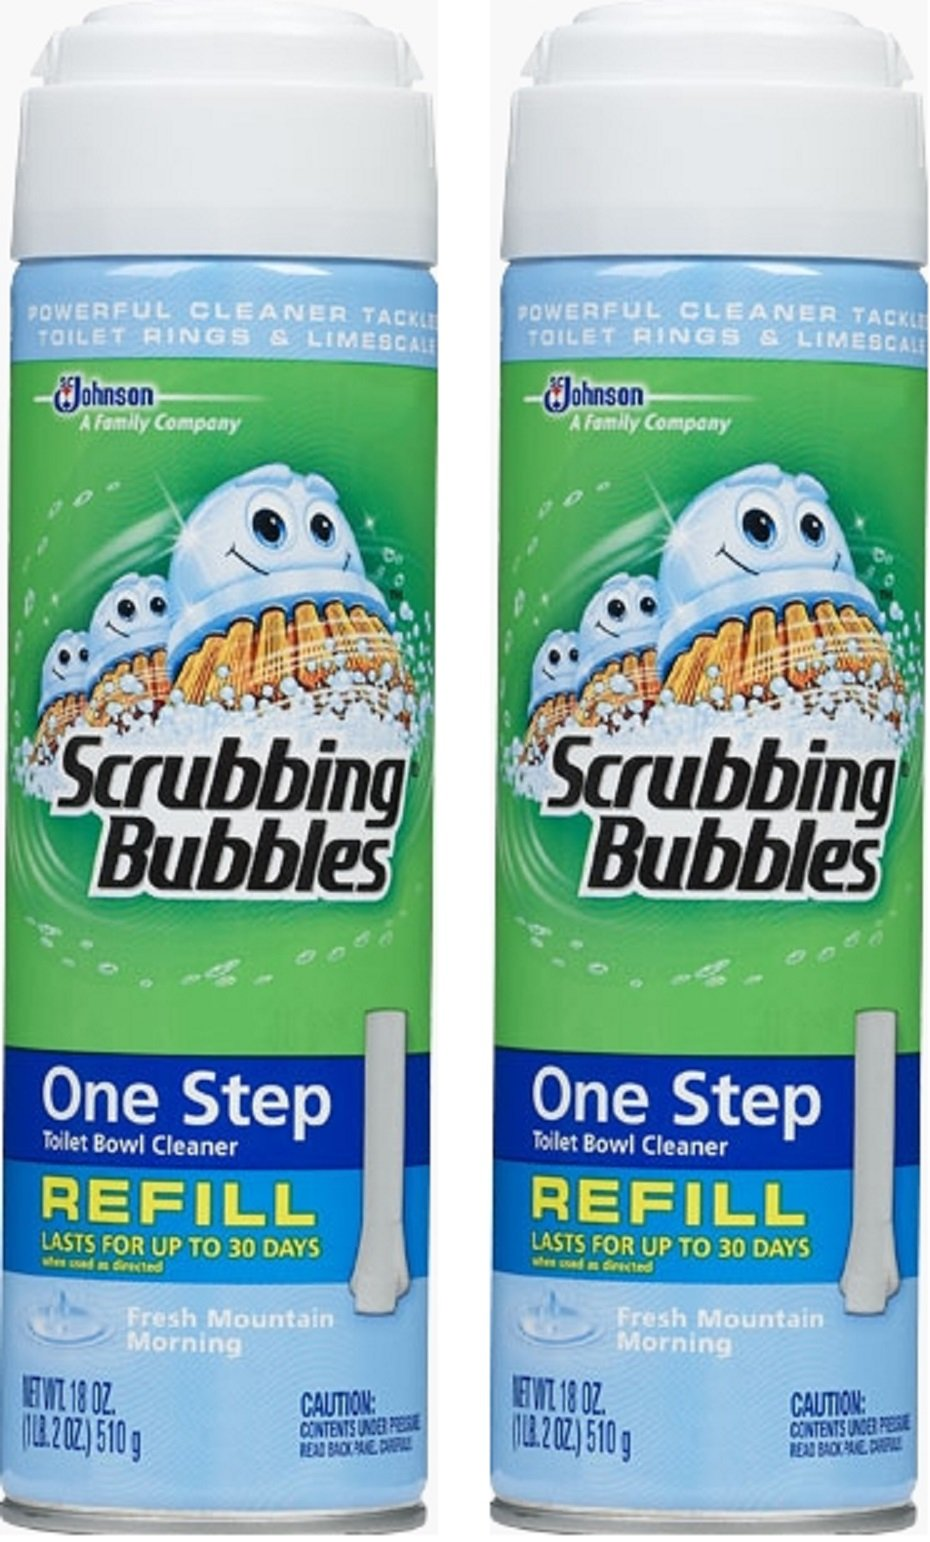 Scrubbing Bubbles 18 Oz. Automatic Toilet Bowl Cleaner Refill by Scrubbing Bubbles